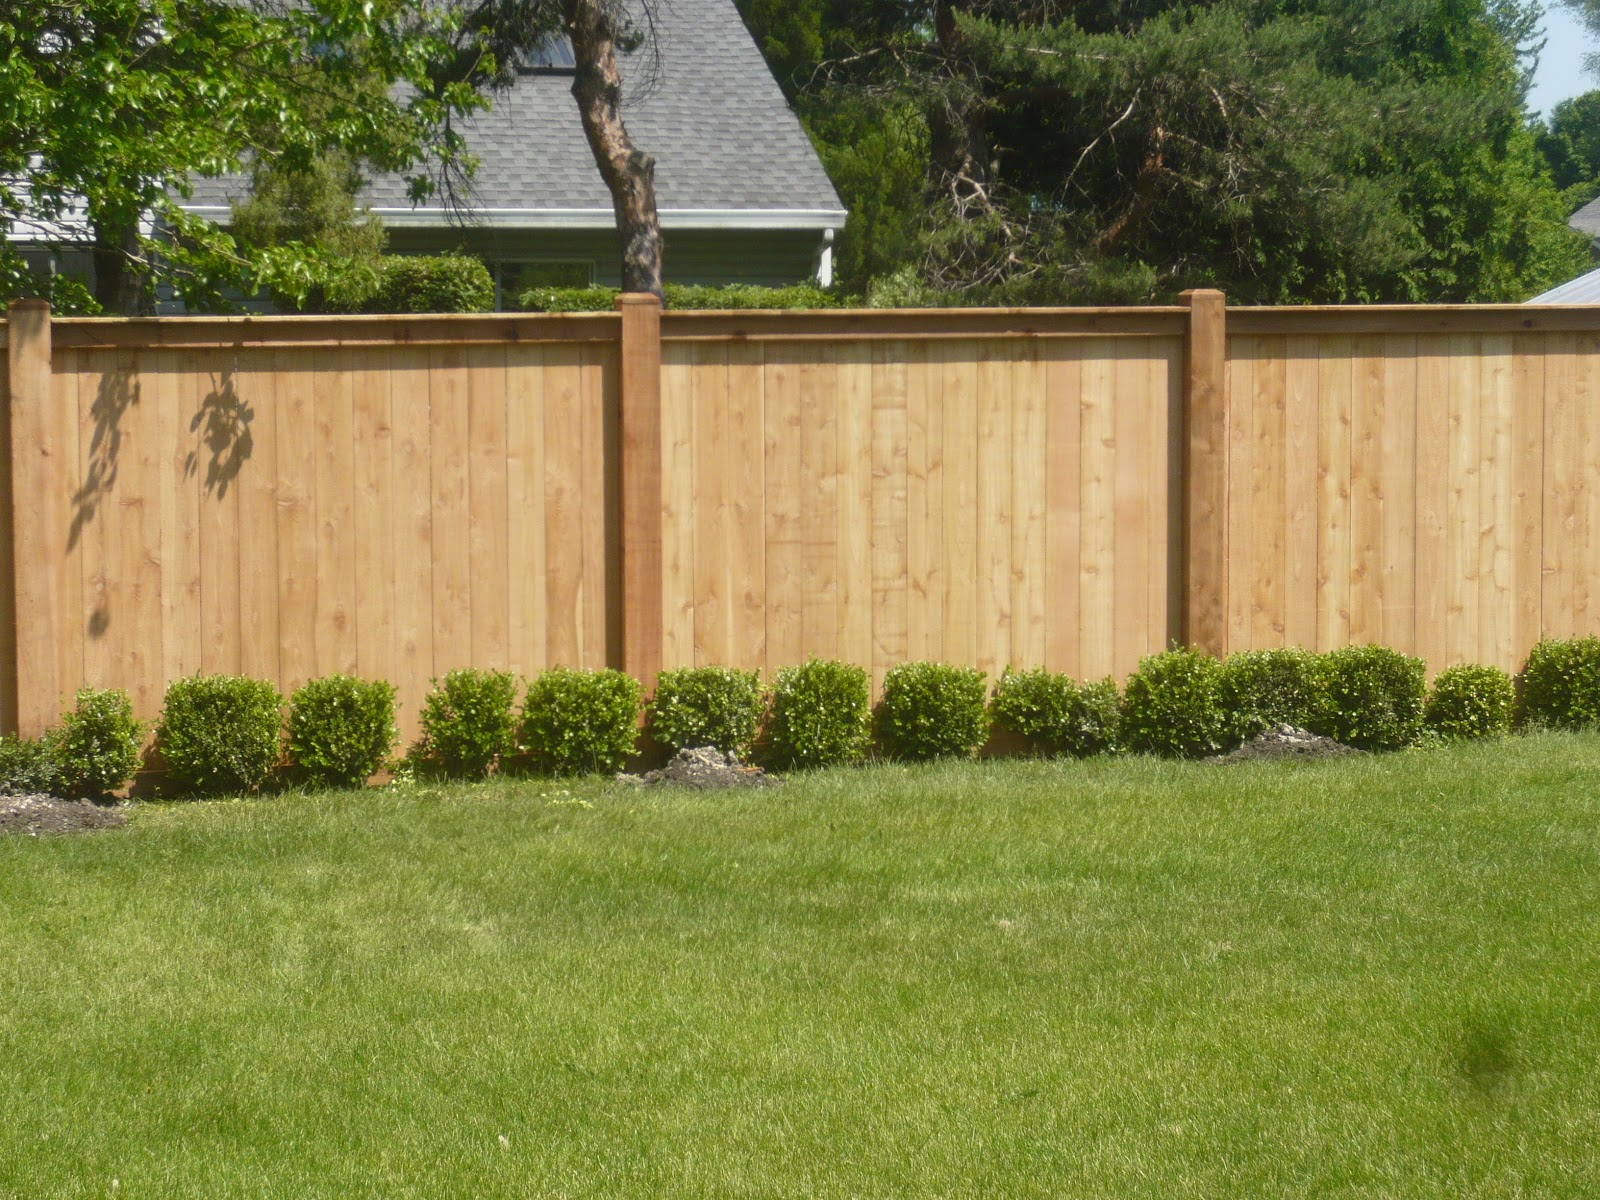 10 Tricks How To Upgrade Wood Fence Ideas For Any Backyard Simphome